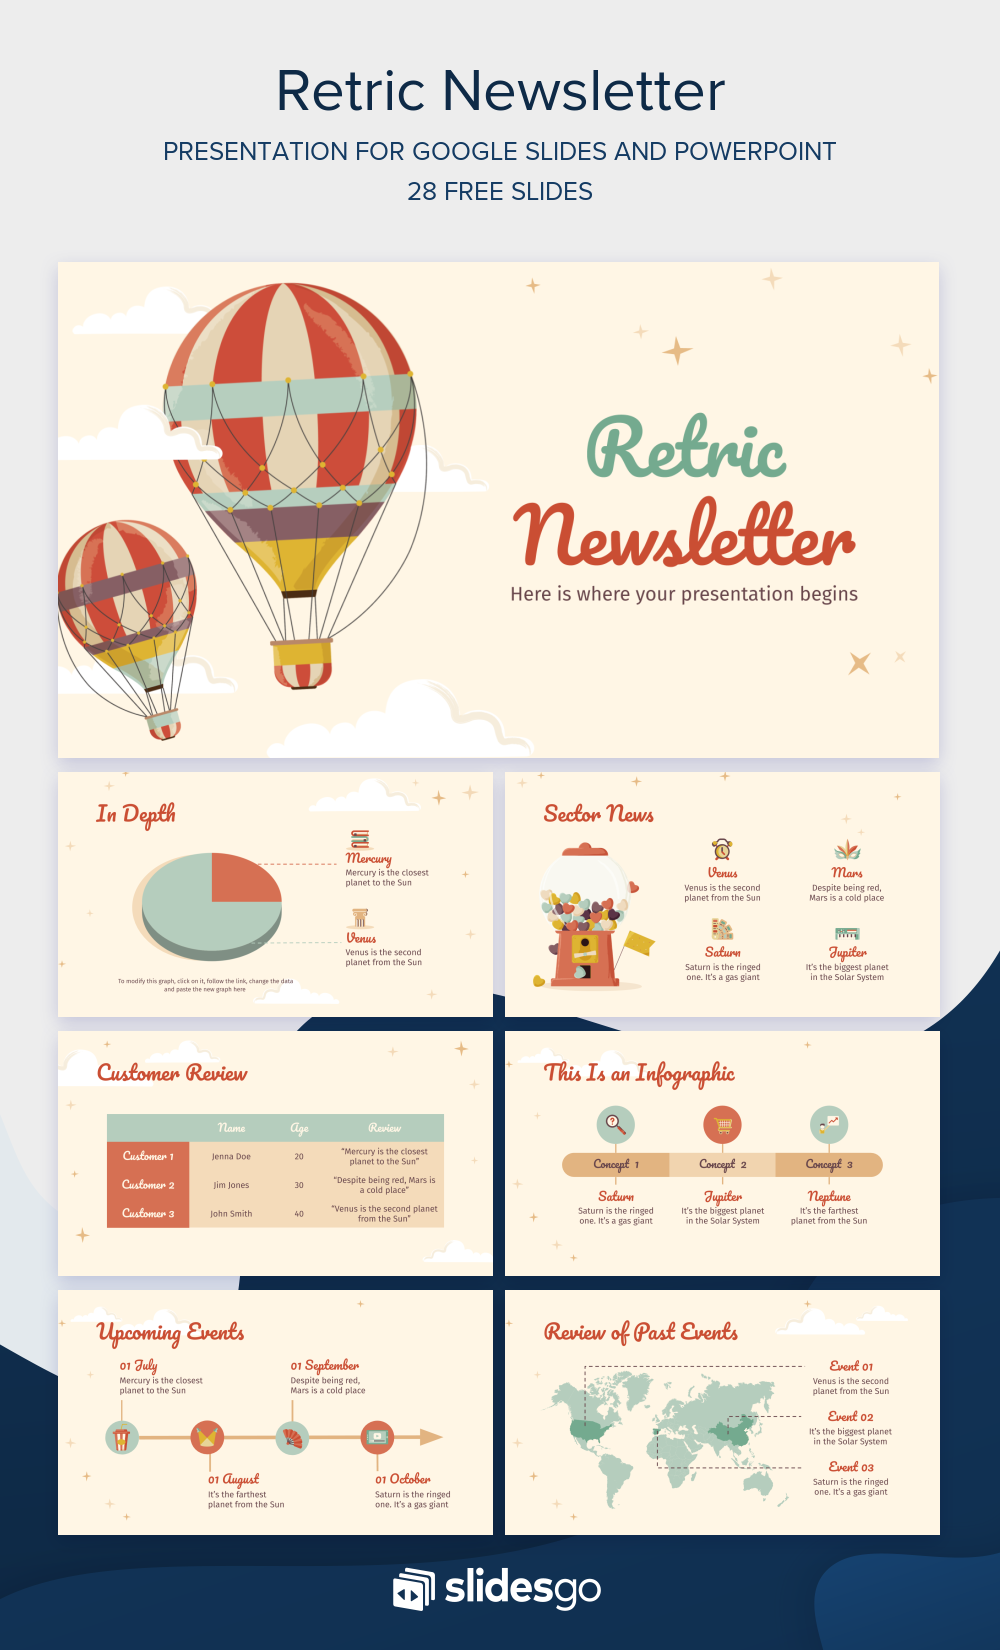 Share The Latest Pieces Of News With This Retric Newsletter Presentatio Powerpoint Presentation Design Powerpoint Background Design Powerpoint Design Templates